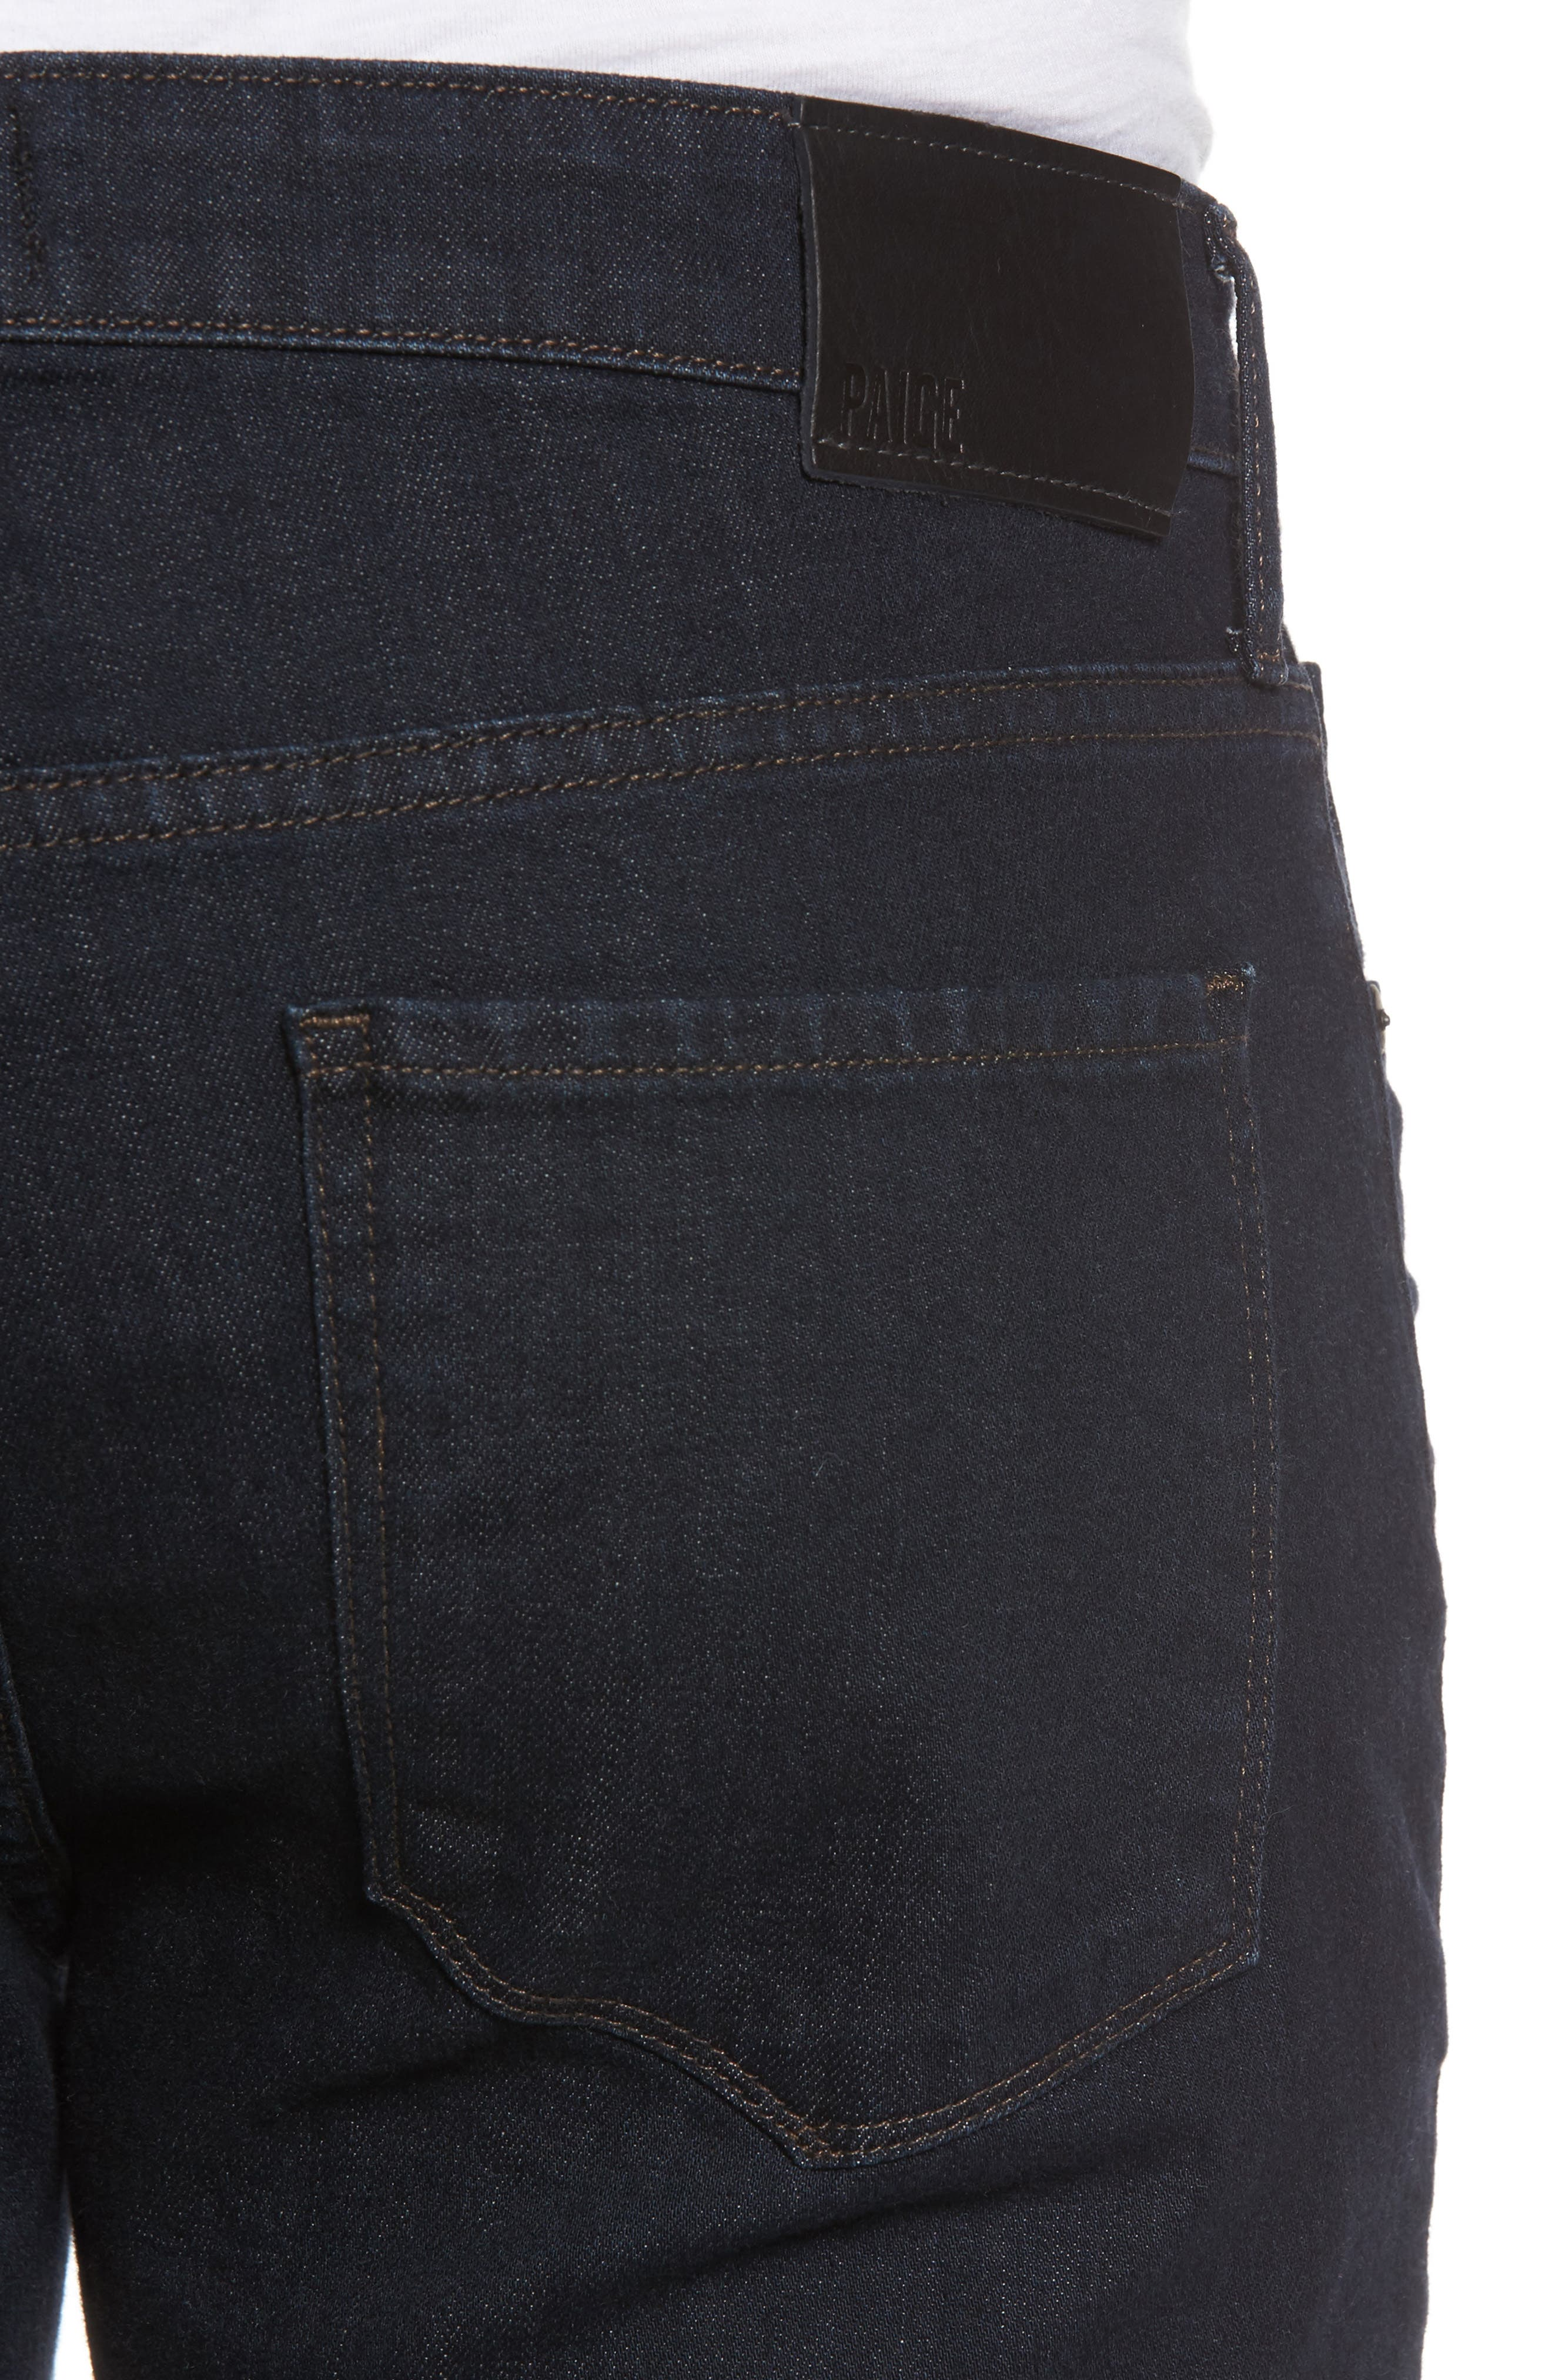 Normandie Straight Fit Jeans,                             Alternate thumbnail 4, color,                             400